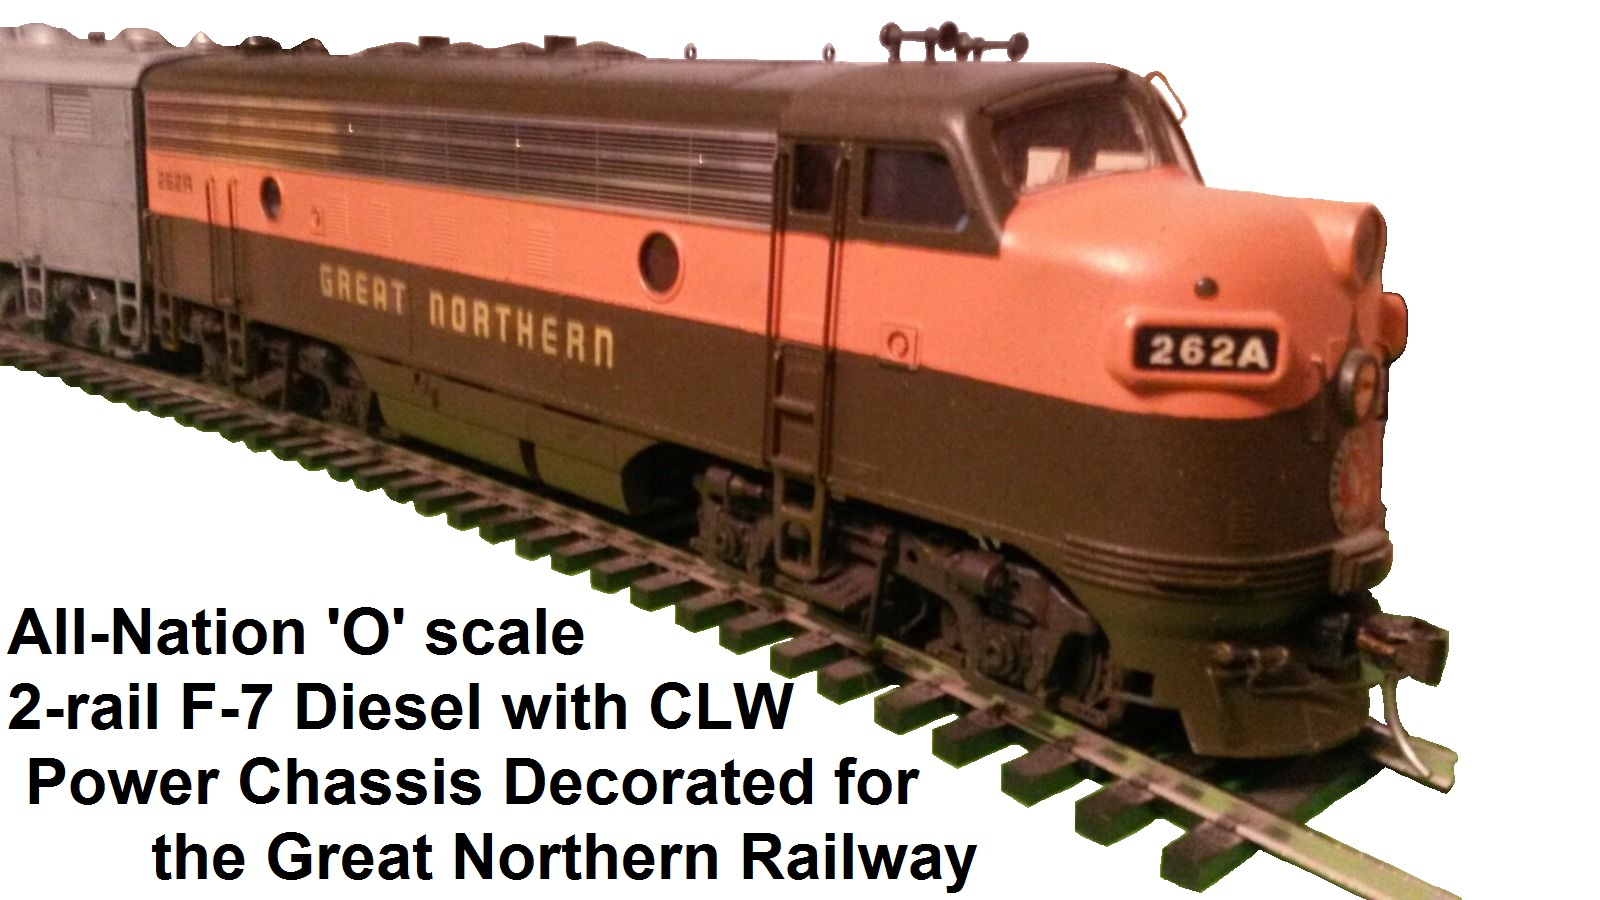 All-Nation 'O' scale F-7 Diesel for 2-rail in Great Northern livery with CLW power chassis